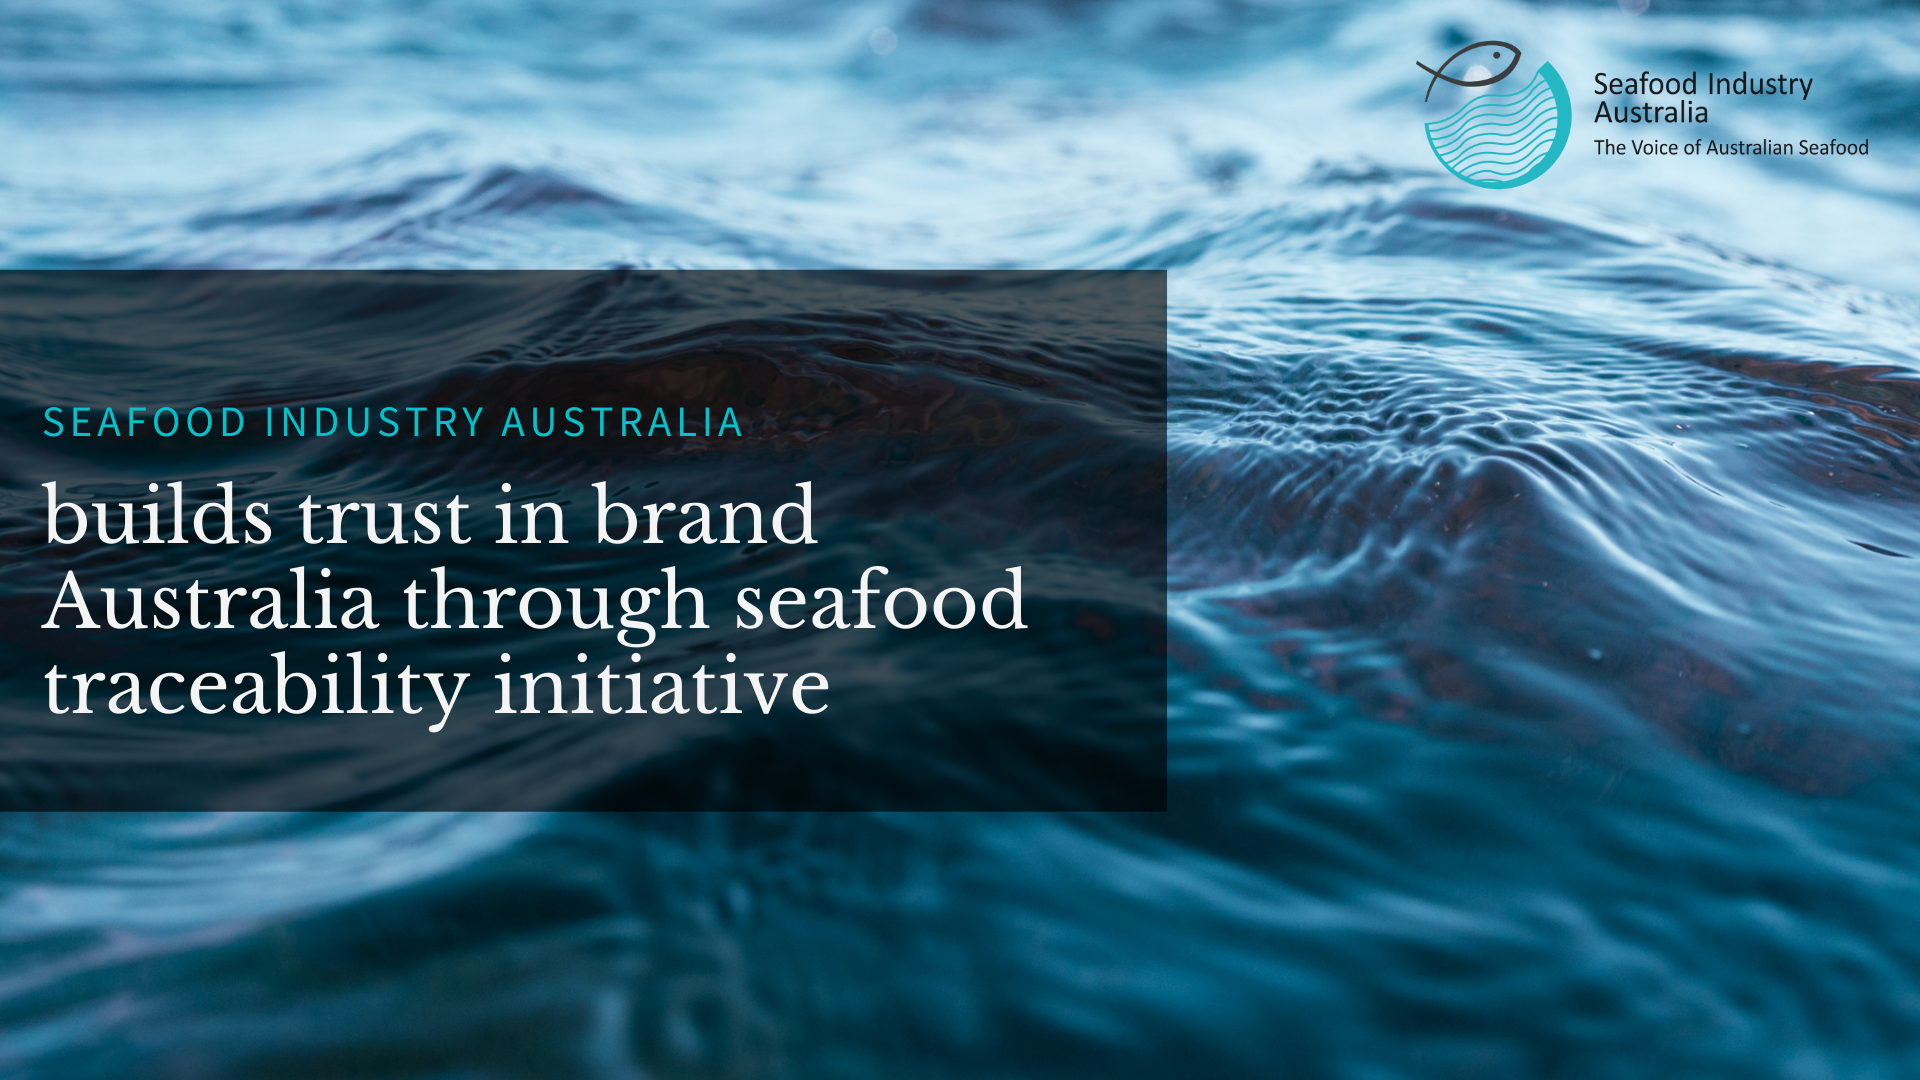 Seafood Industry Australia builds trust in brand Australia through seafood traceability initiative